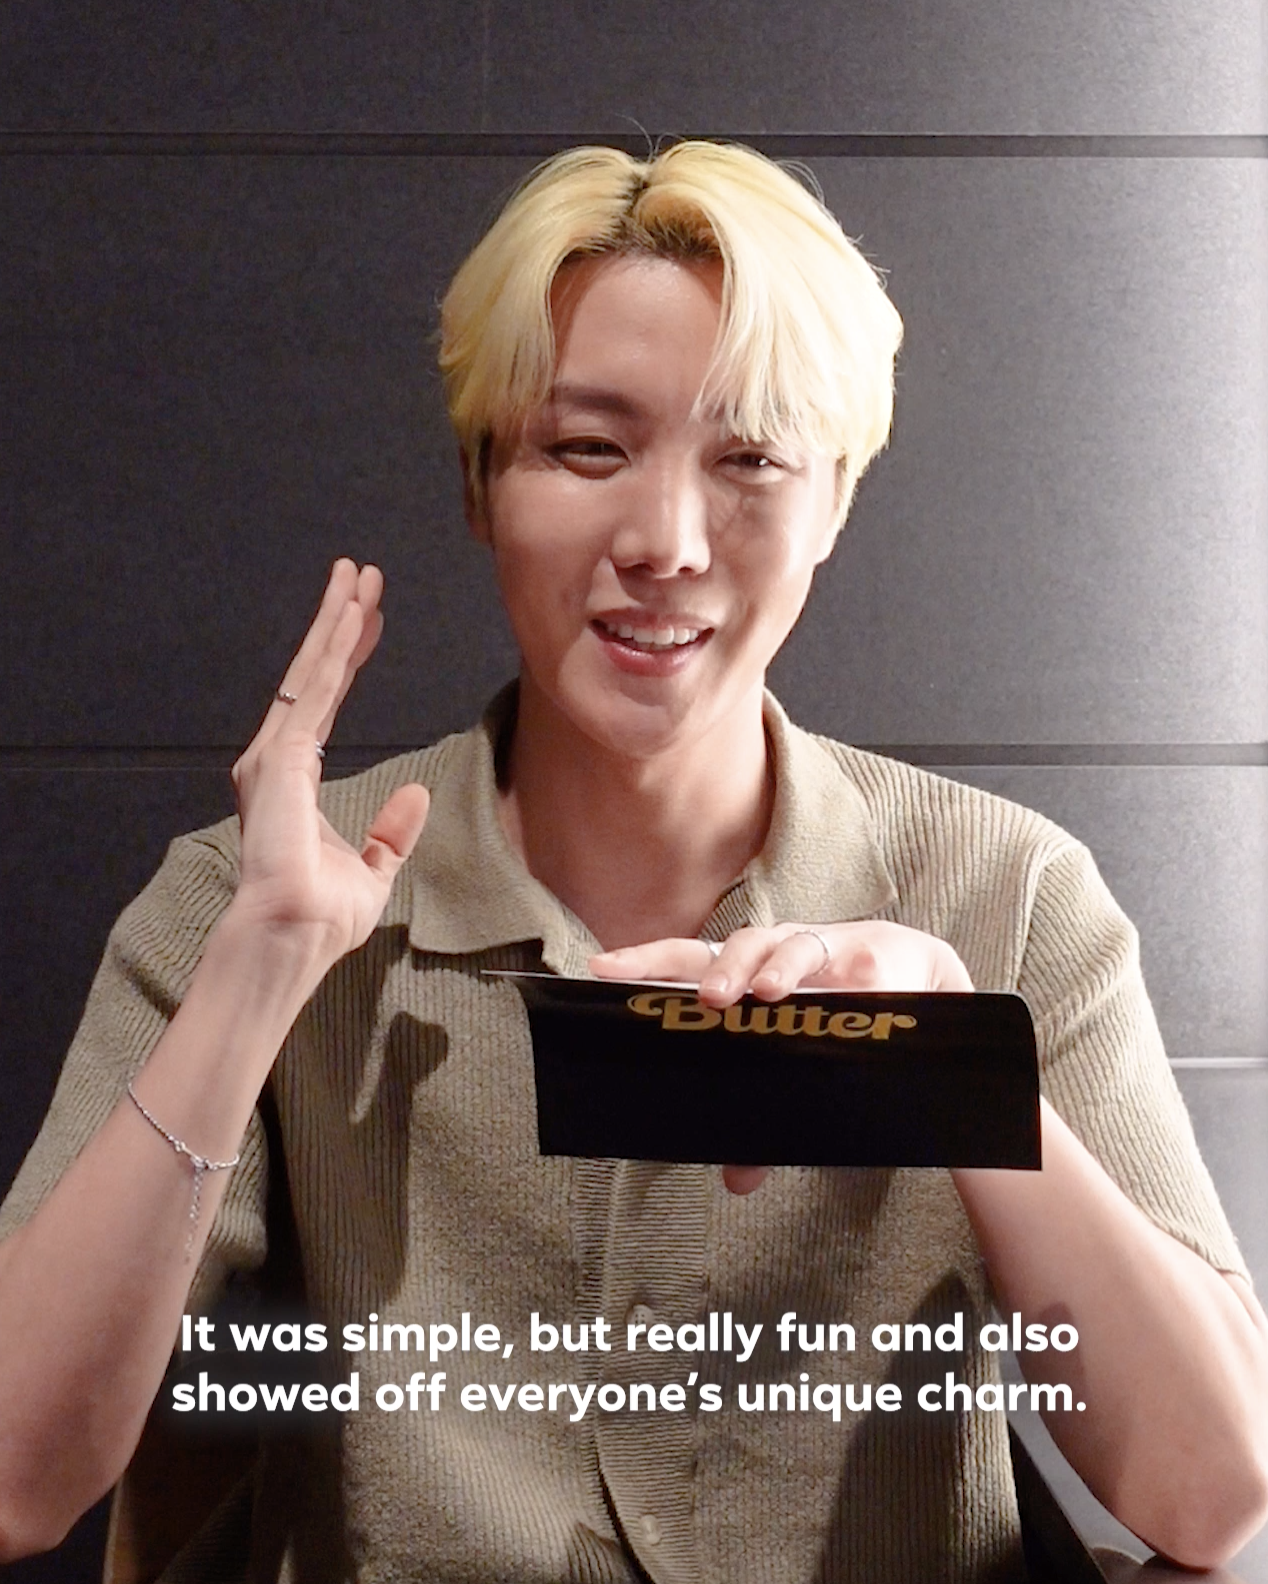 """J-Hope saying, """"It was simple, but really fun and also showed off everyone's unique charms."""""""